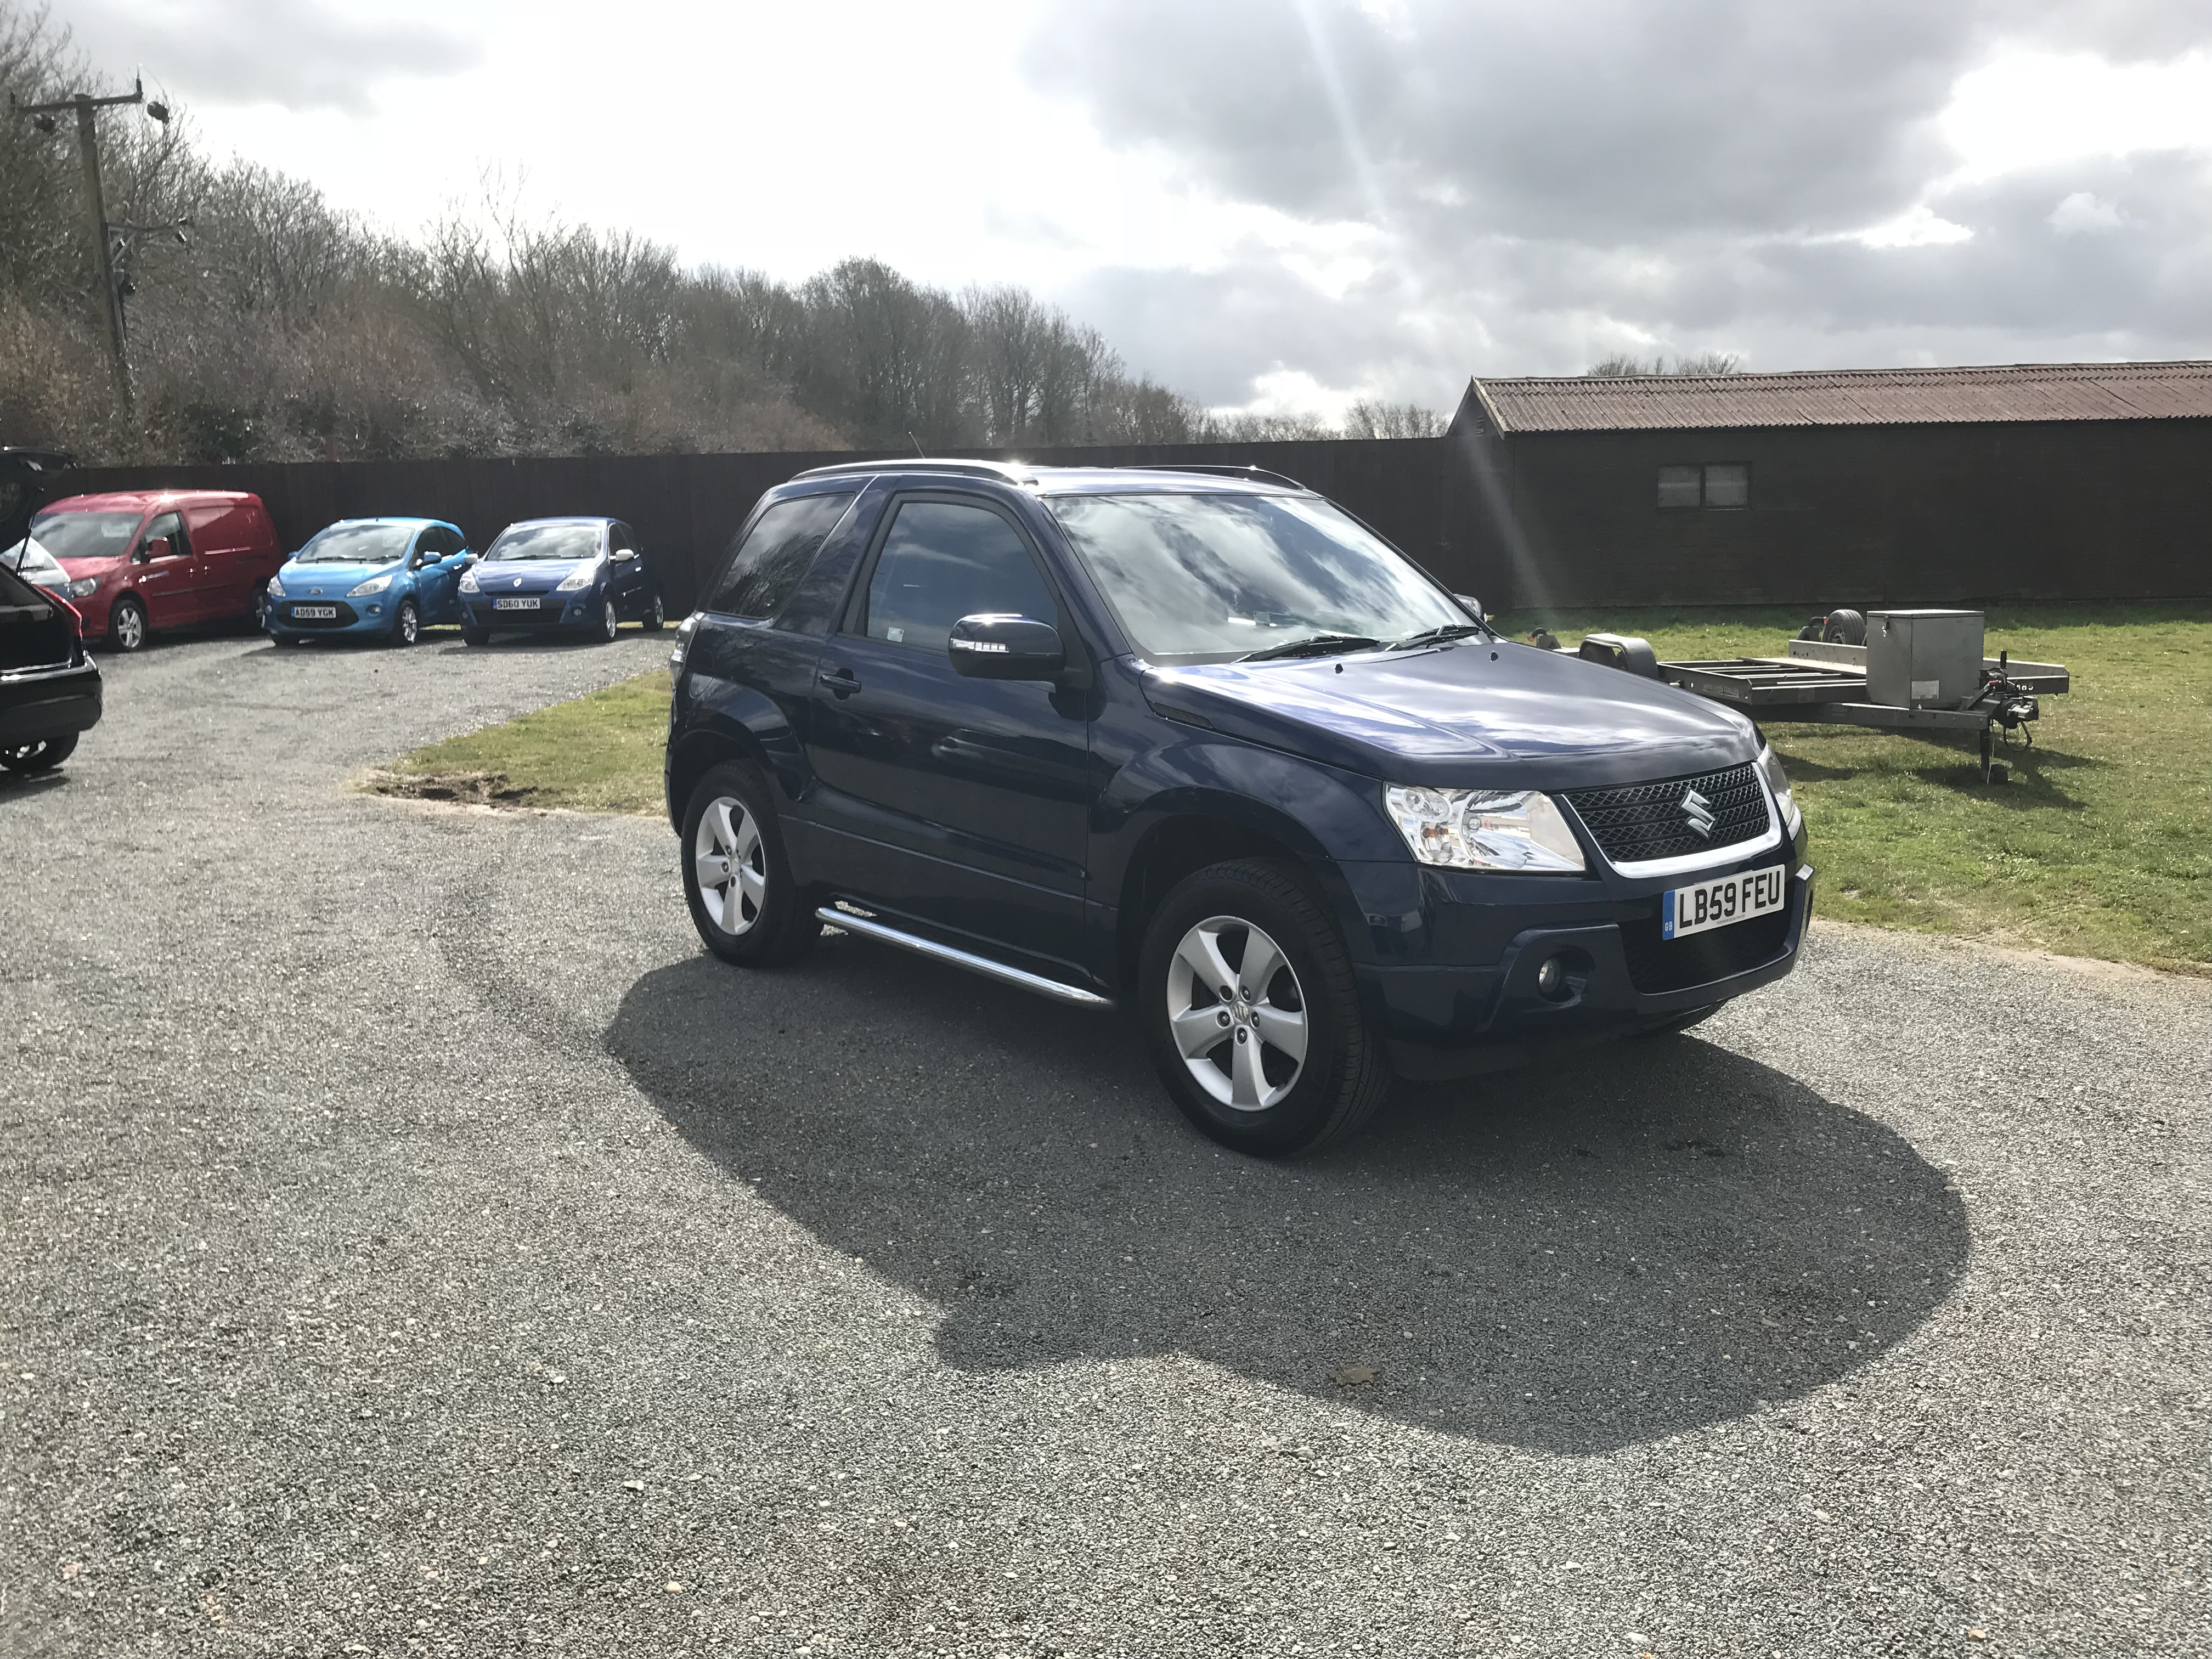 Suzuki Grand Vitara 1.6 SZ4 4×4 (59 Reg) – Sold